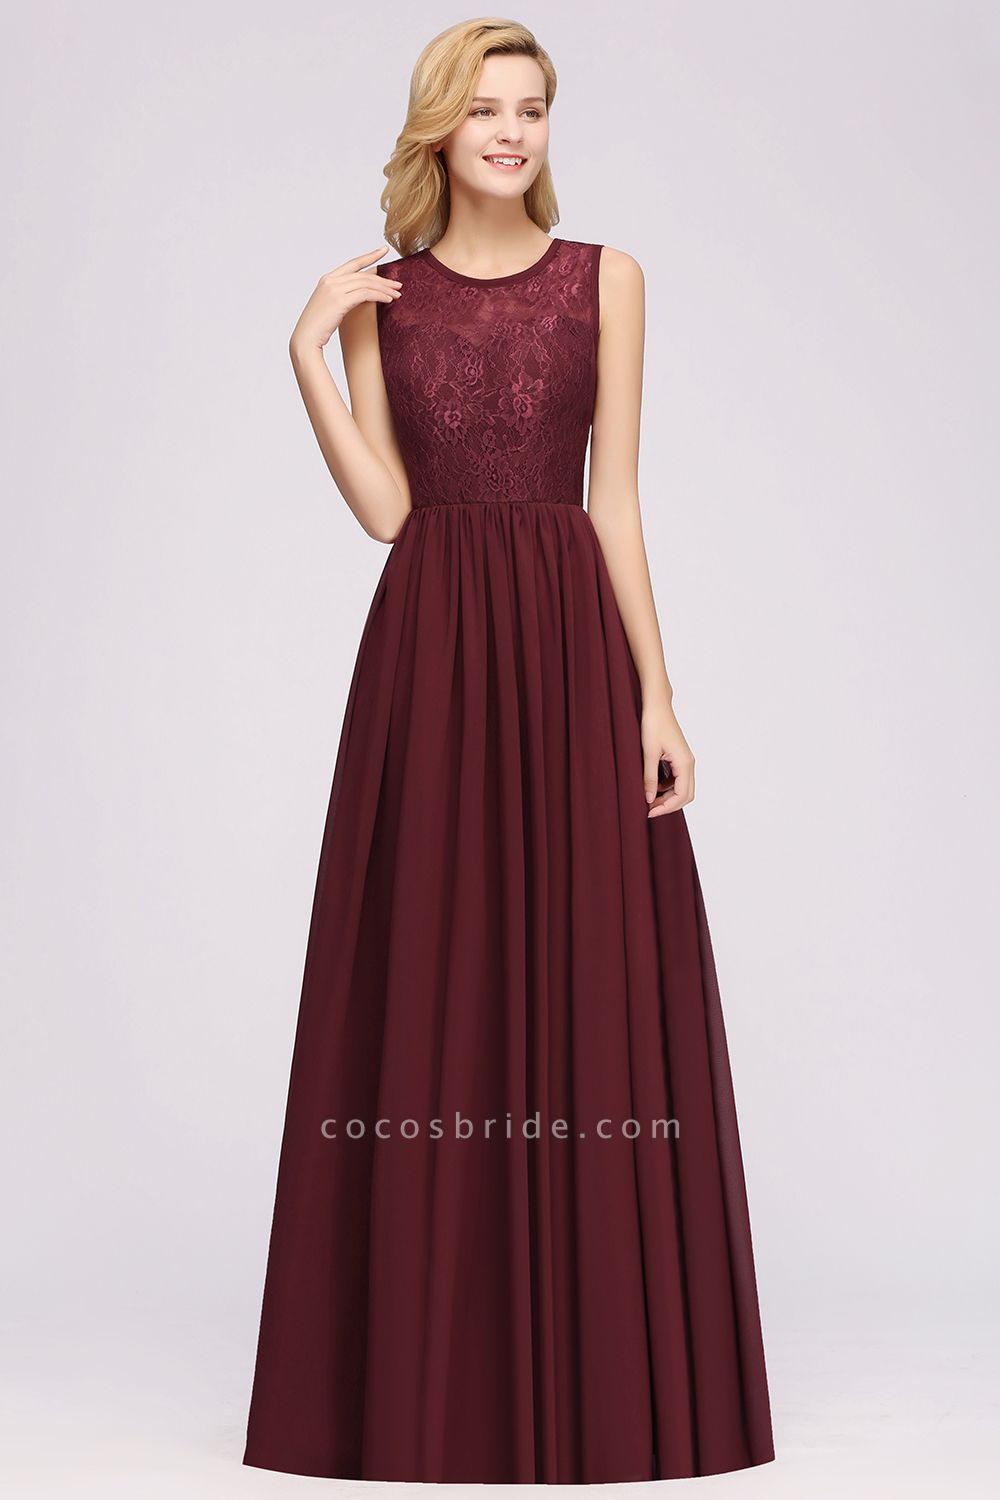 A-line Chiffon Lace Jewel Sleeveless Ruffles Floor-Length Bridesmaid Dresses with Appliques